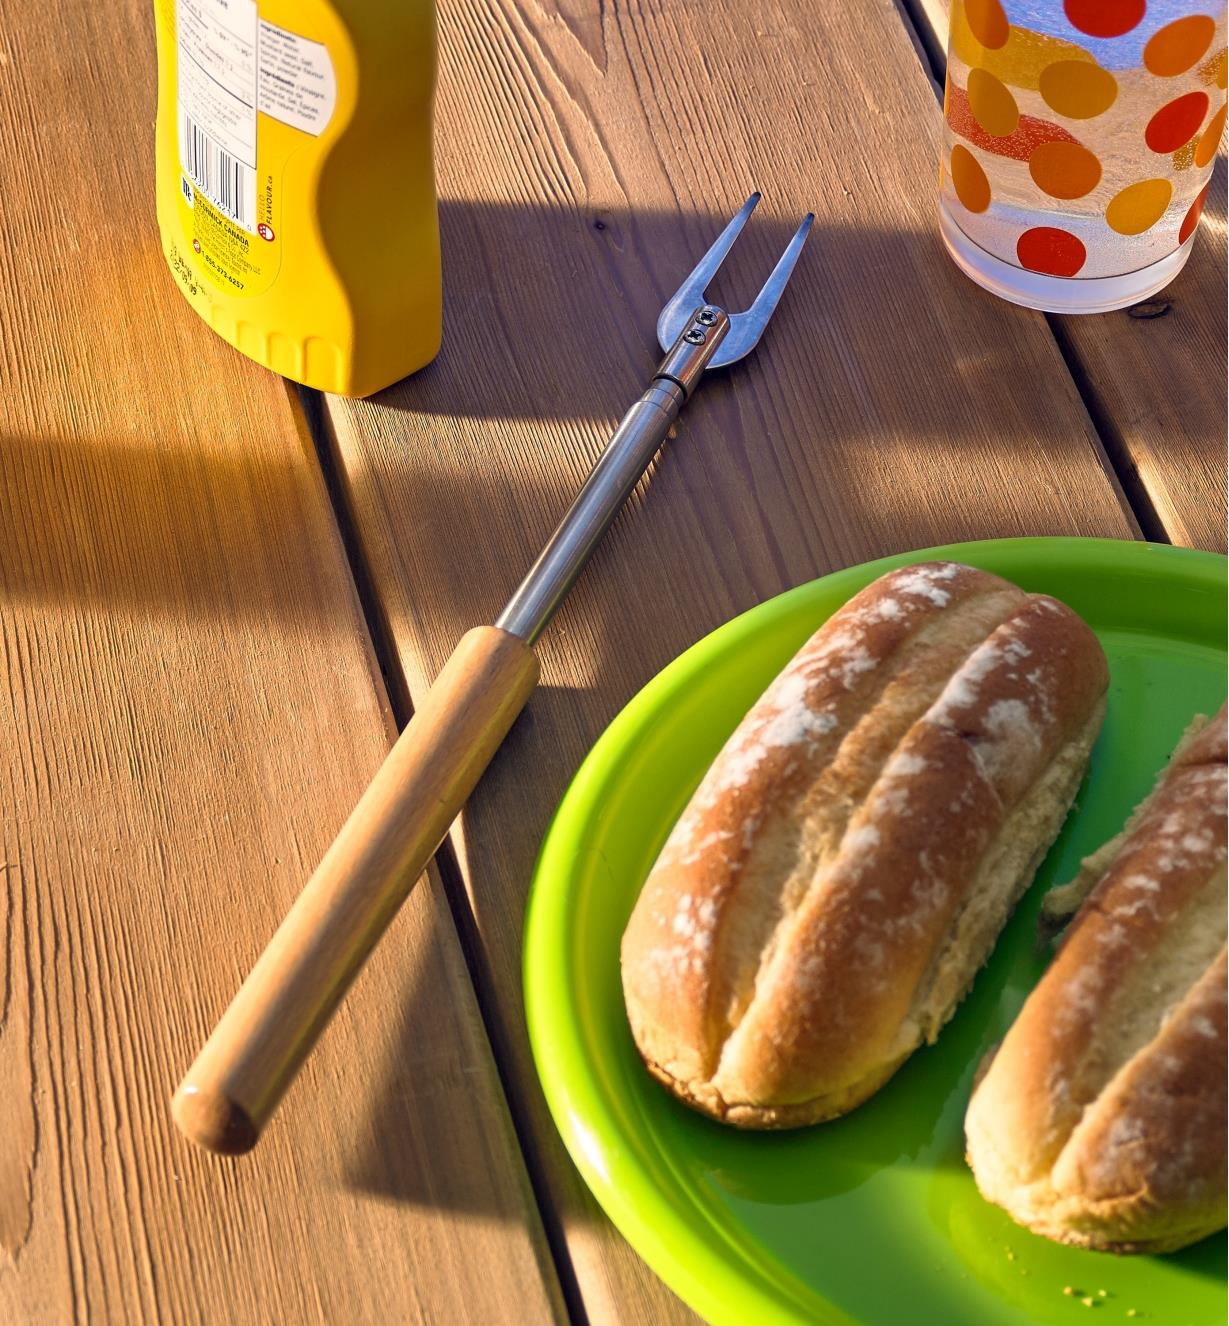 Telescoping campfire fork on a table with food items